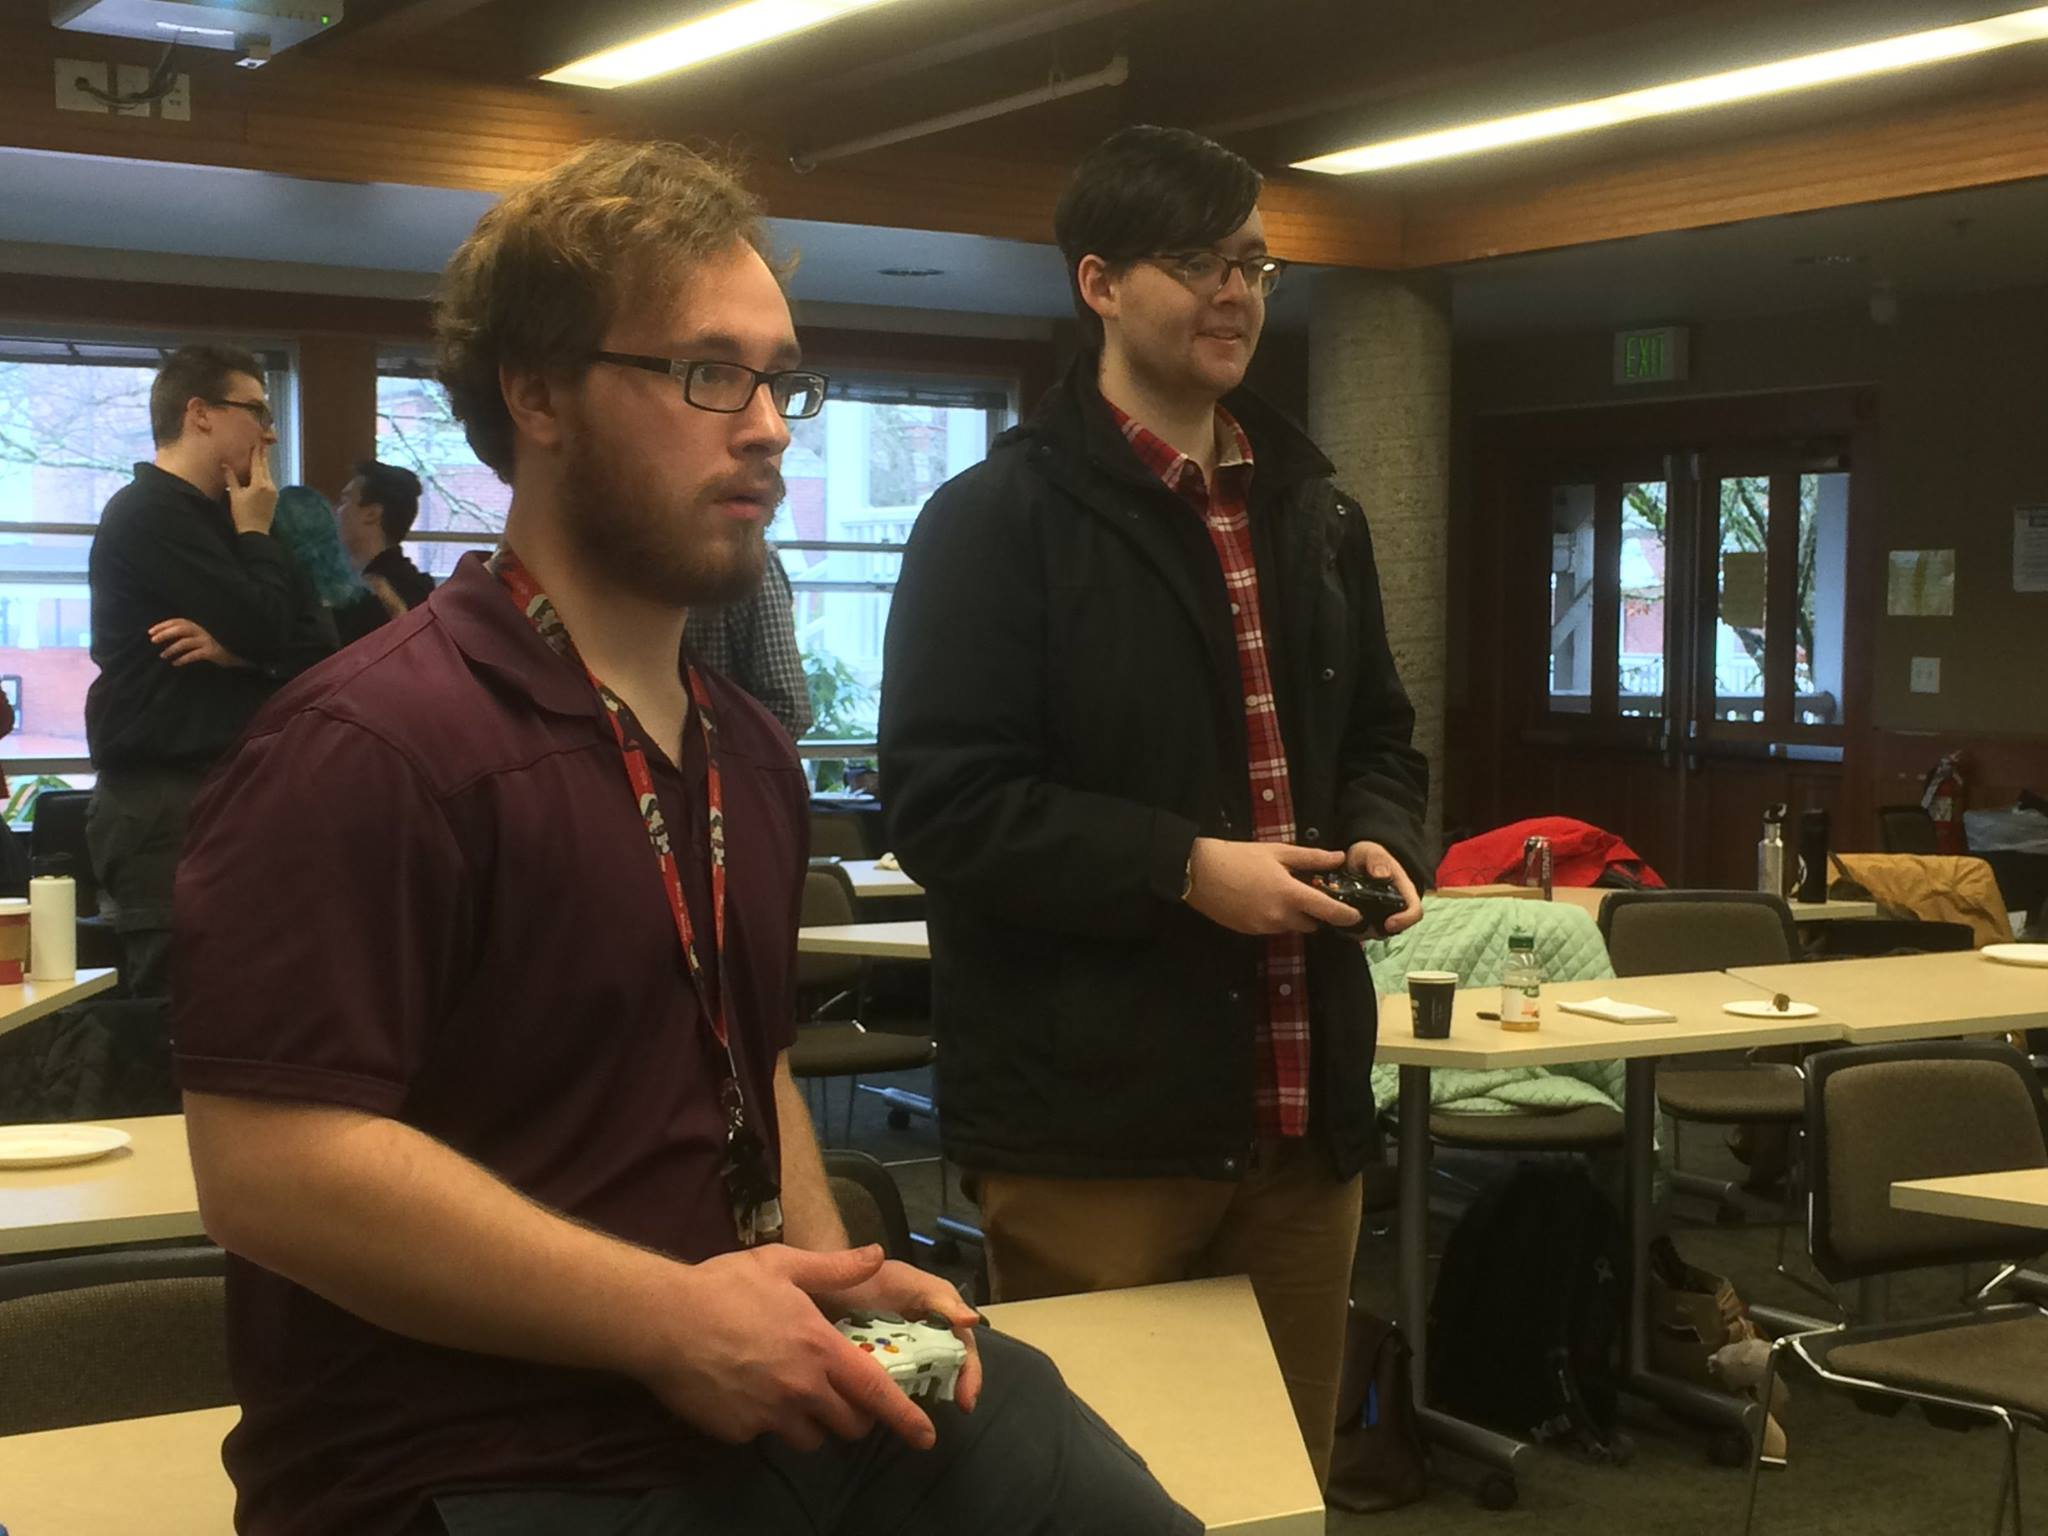 Enraptured gamesters, during our Game Showcase in the middle of the day.